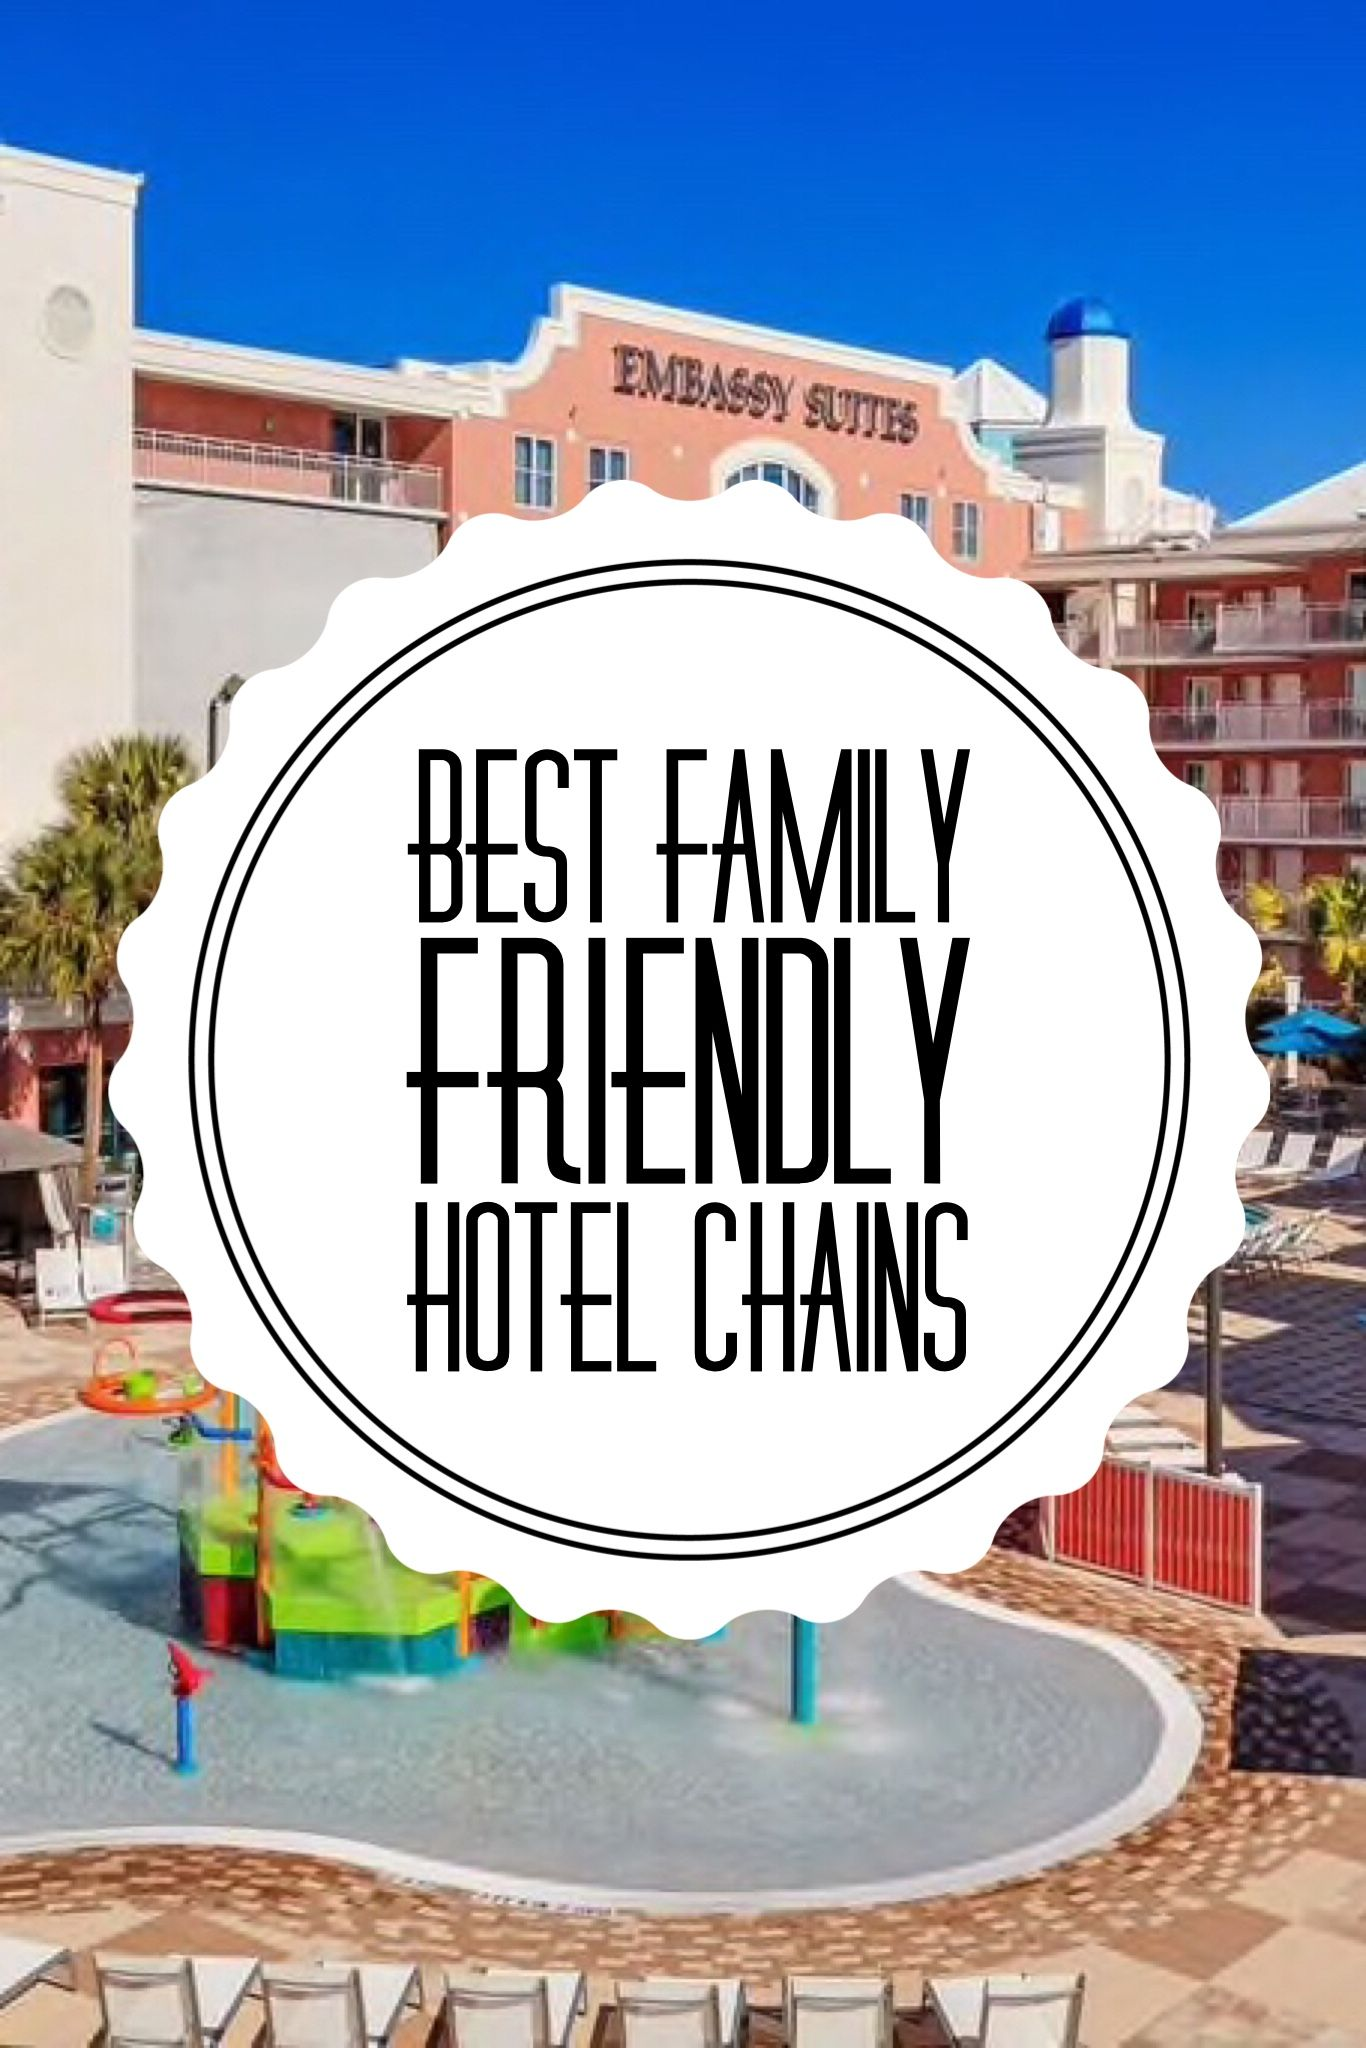 Best Family Friendly Hotel Chains With Images Family Friendly